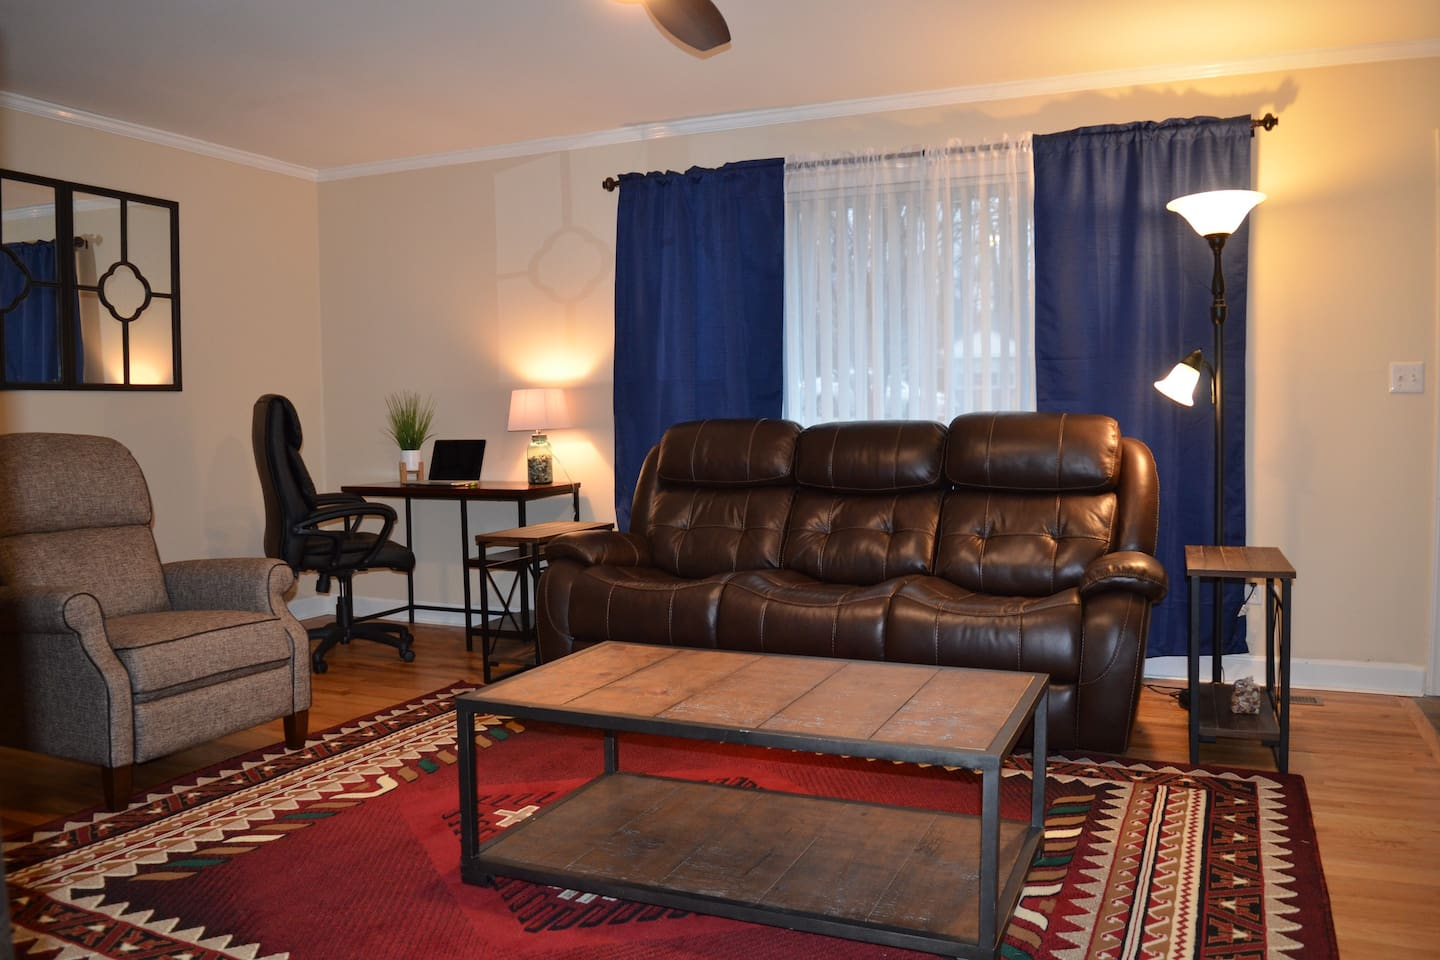 Living room with a ceiling fan (not pictured) and desk work area. Electronic recliners on ends of the sofa, and the arm chair pushes to recline.  We like to rest our legs!